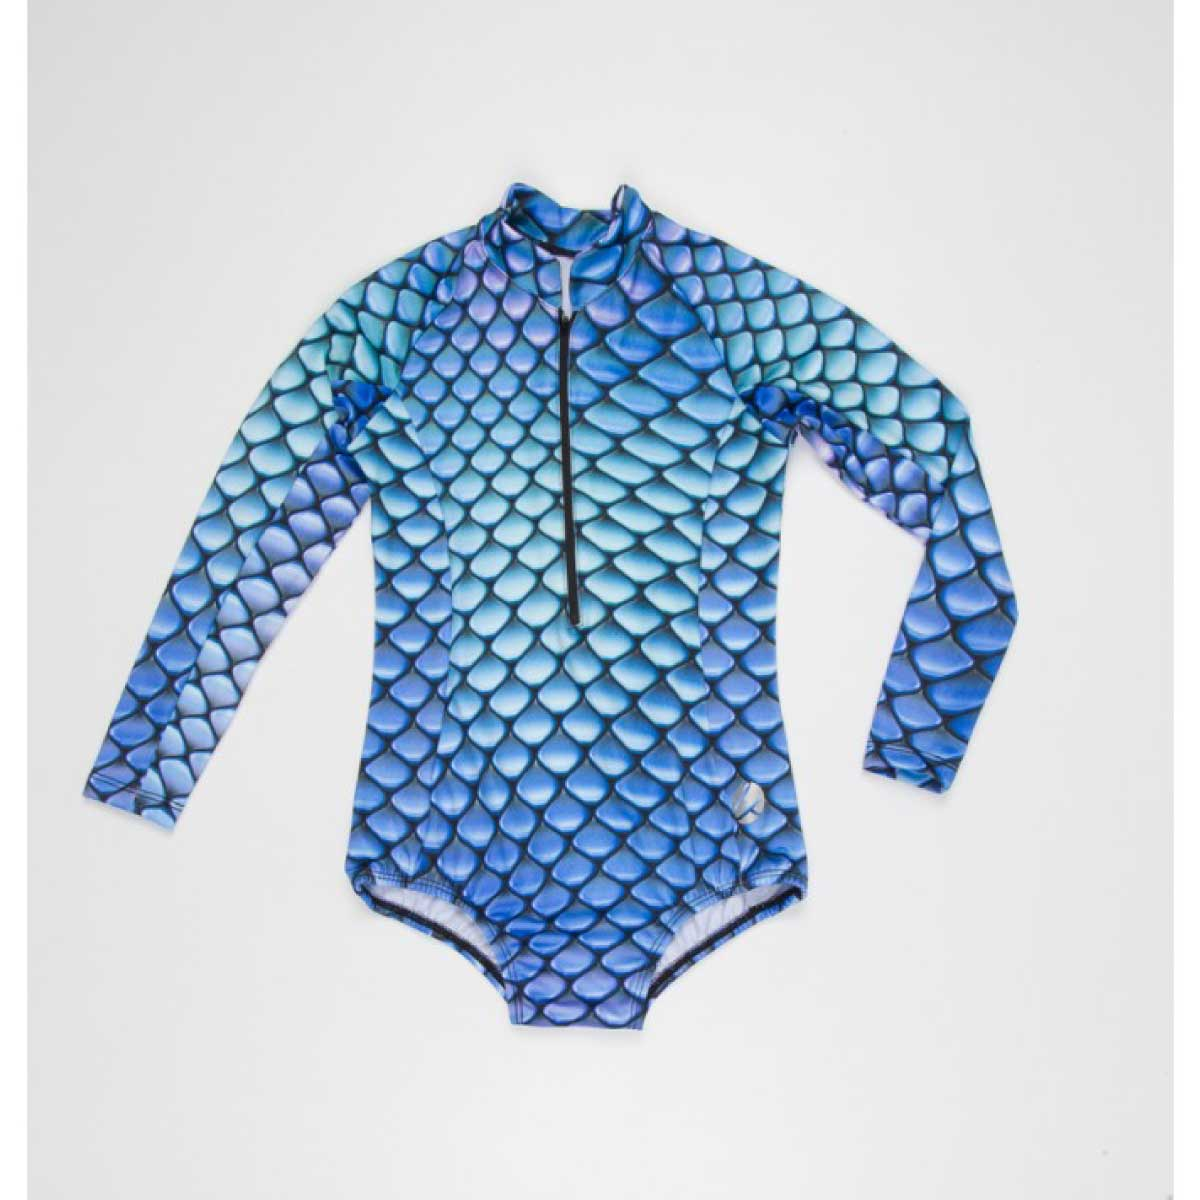 BLUE FLAKES LONG SLEEVE SWIMSUIT